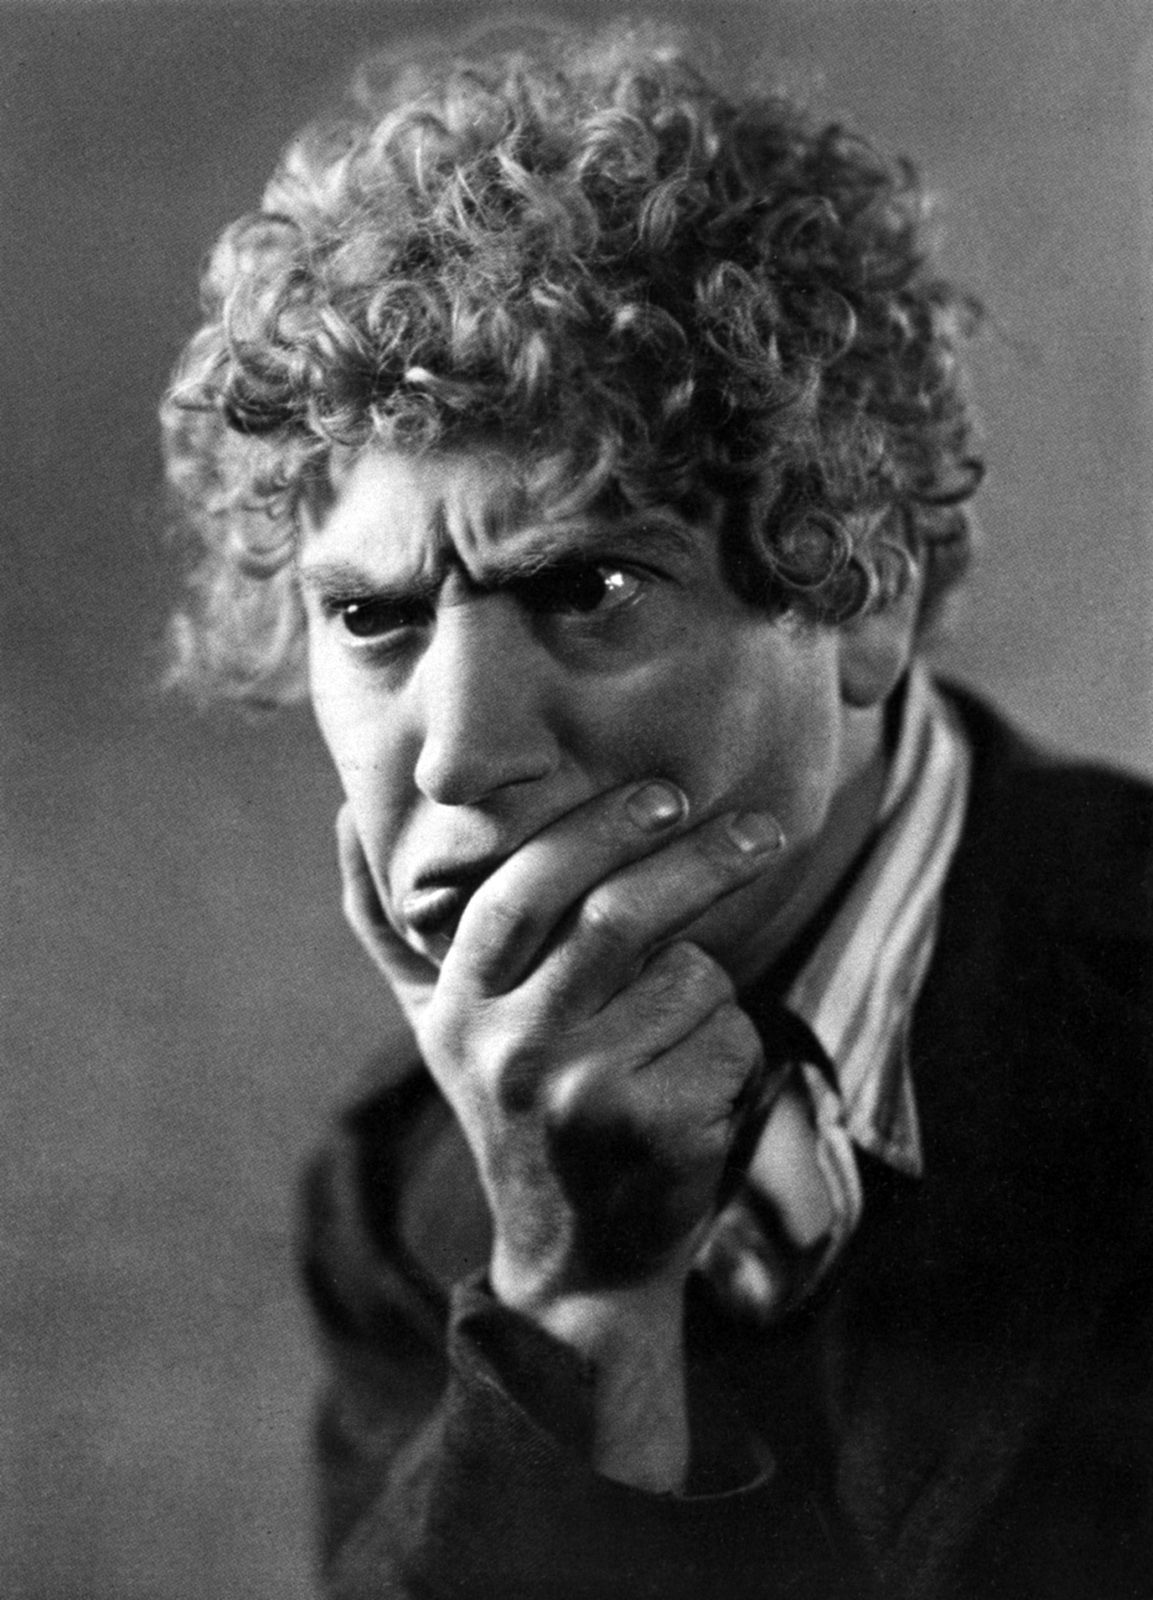 """""""If things get too much for you and you feel the whole world's against you, go stand on your head. If you can think of anything crazier to do, do it."""" - Harpo Marx"""